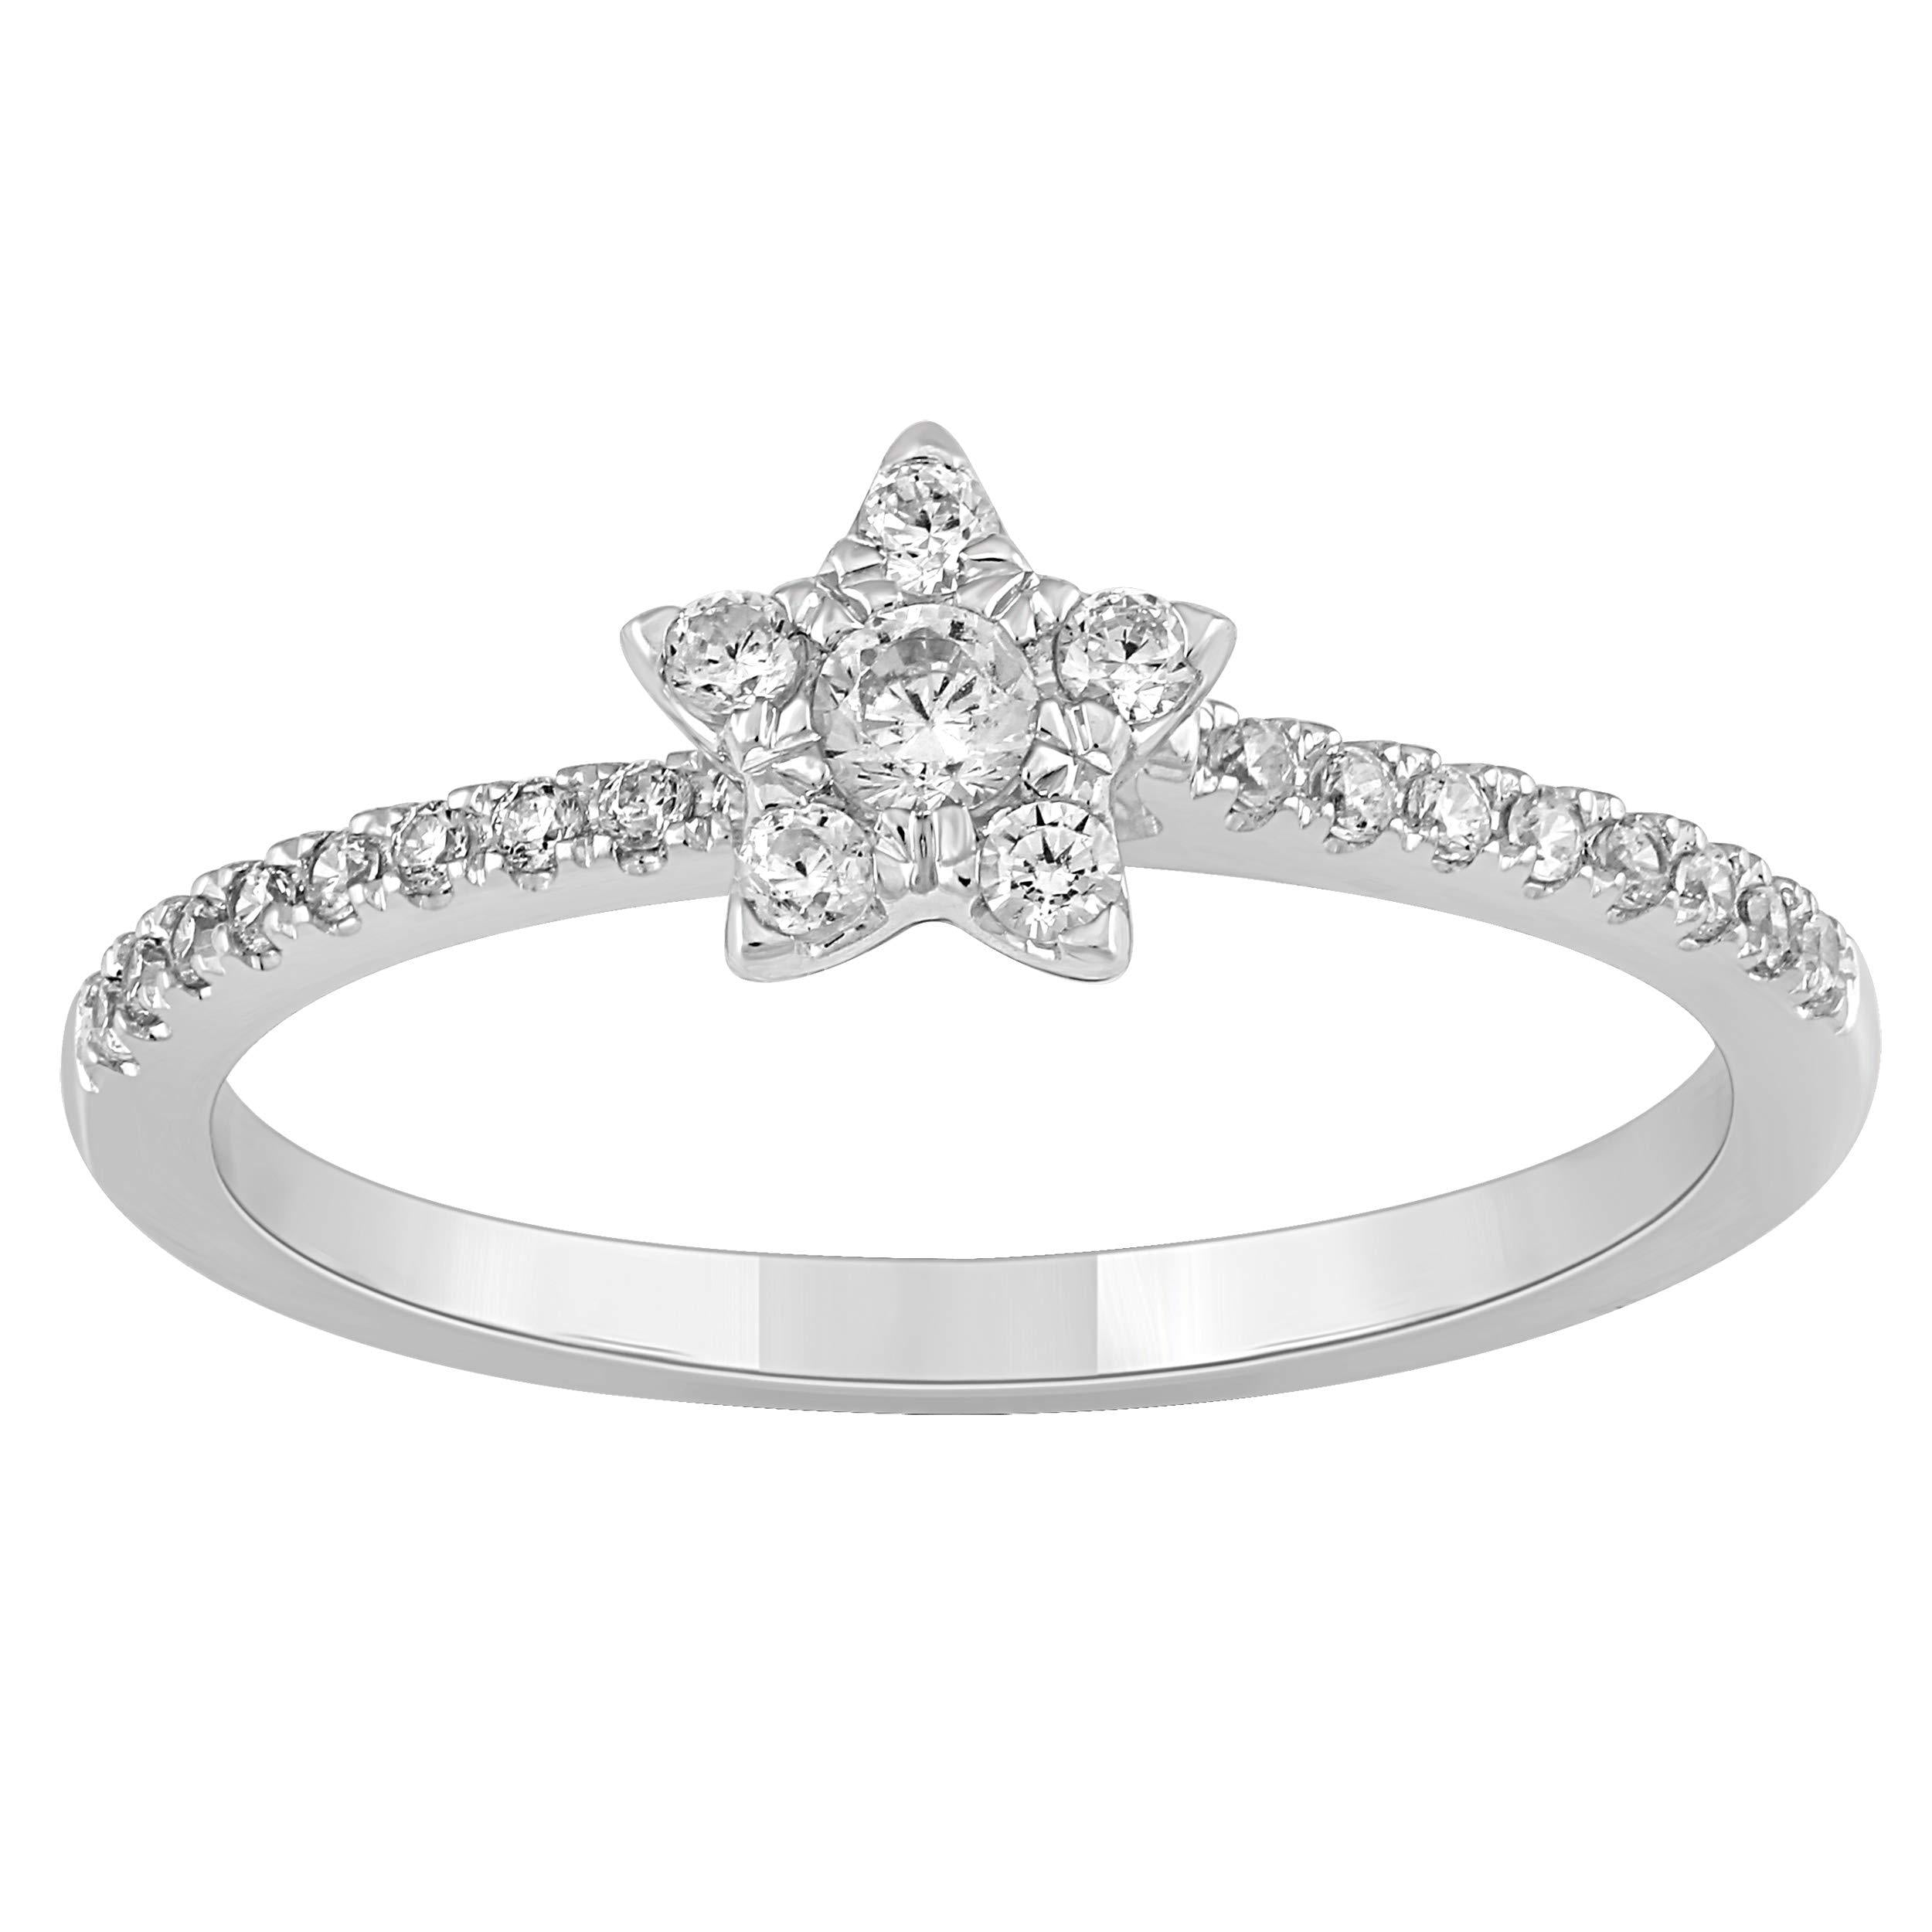 enchanted_disney-tinker-bell_promise_ring-9k_white_gold_0.25CTTW_1